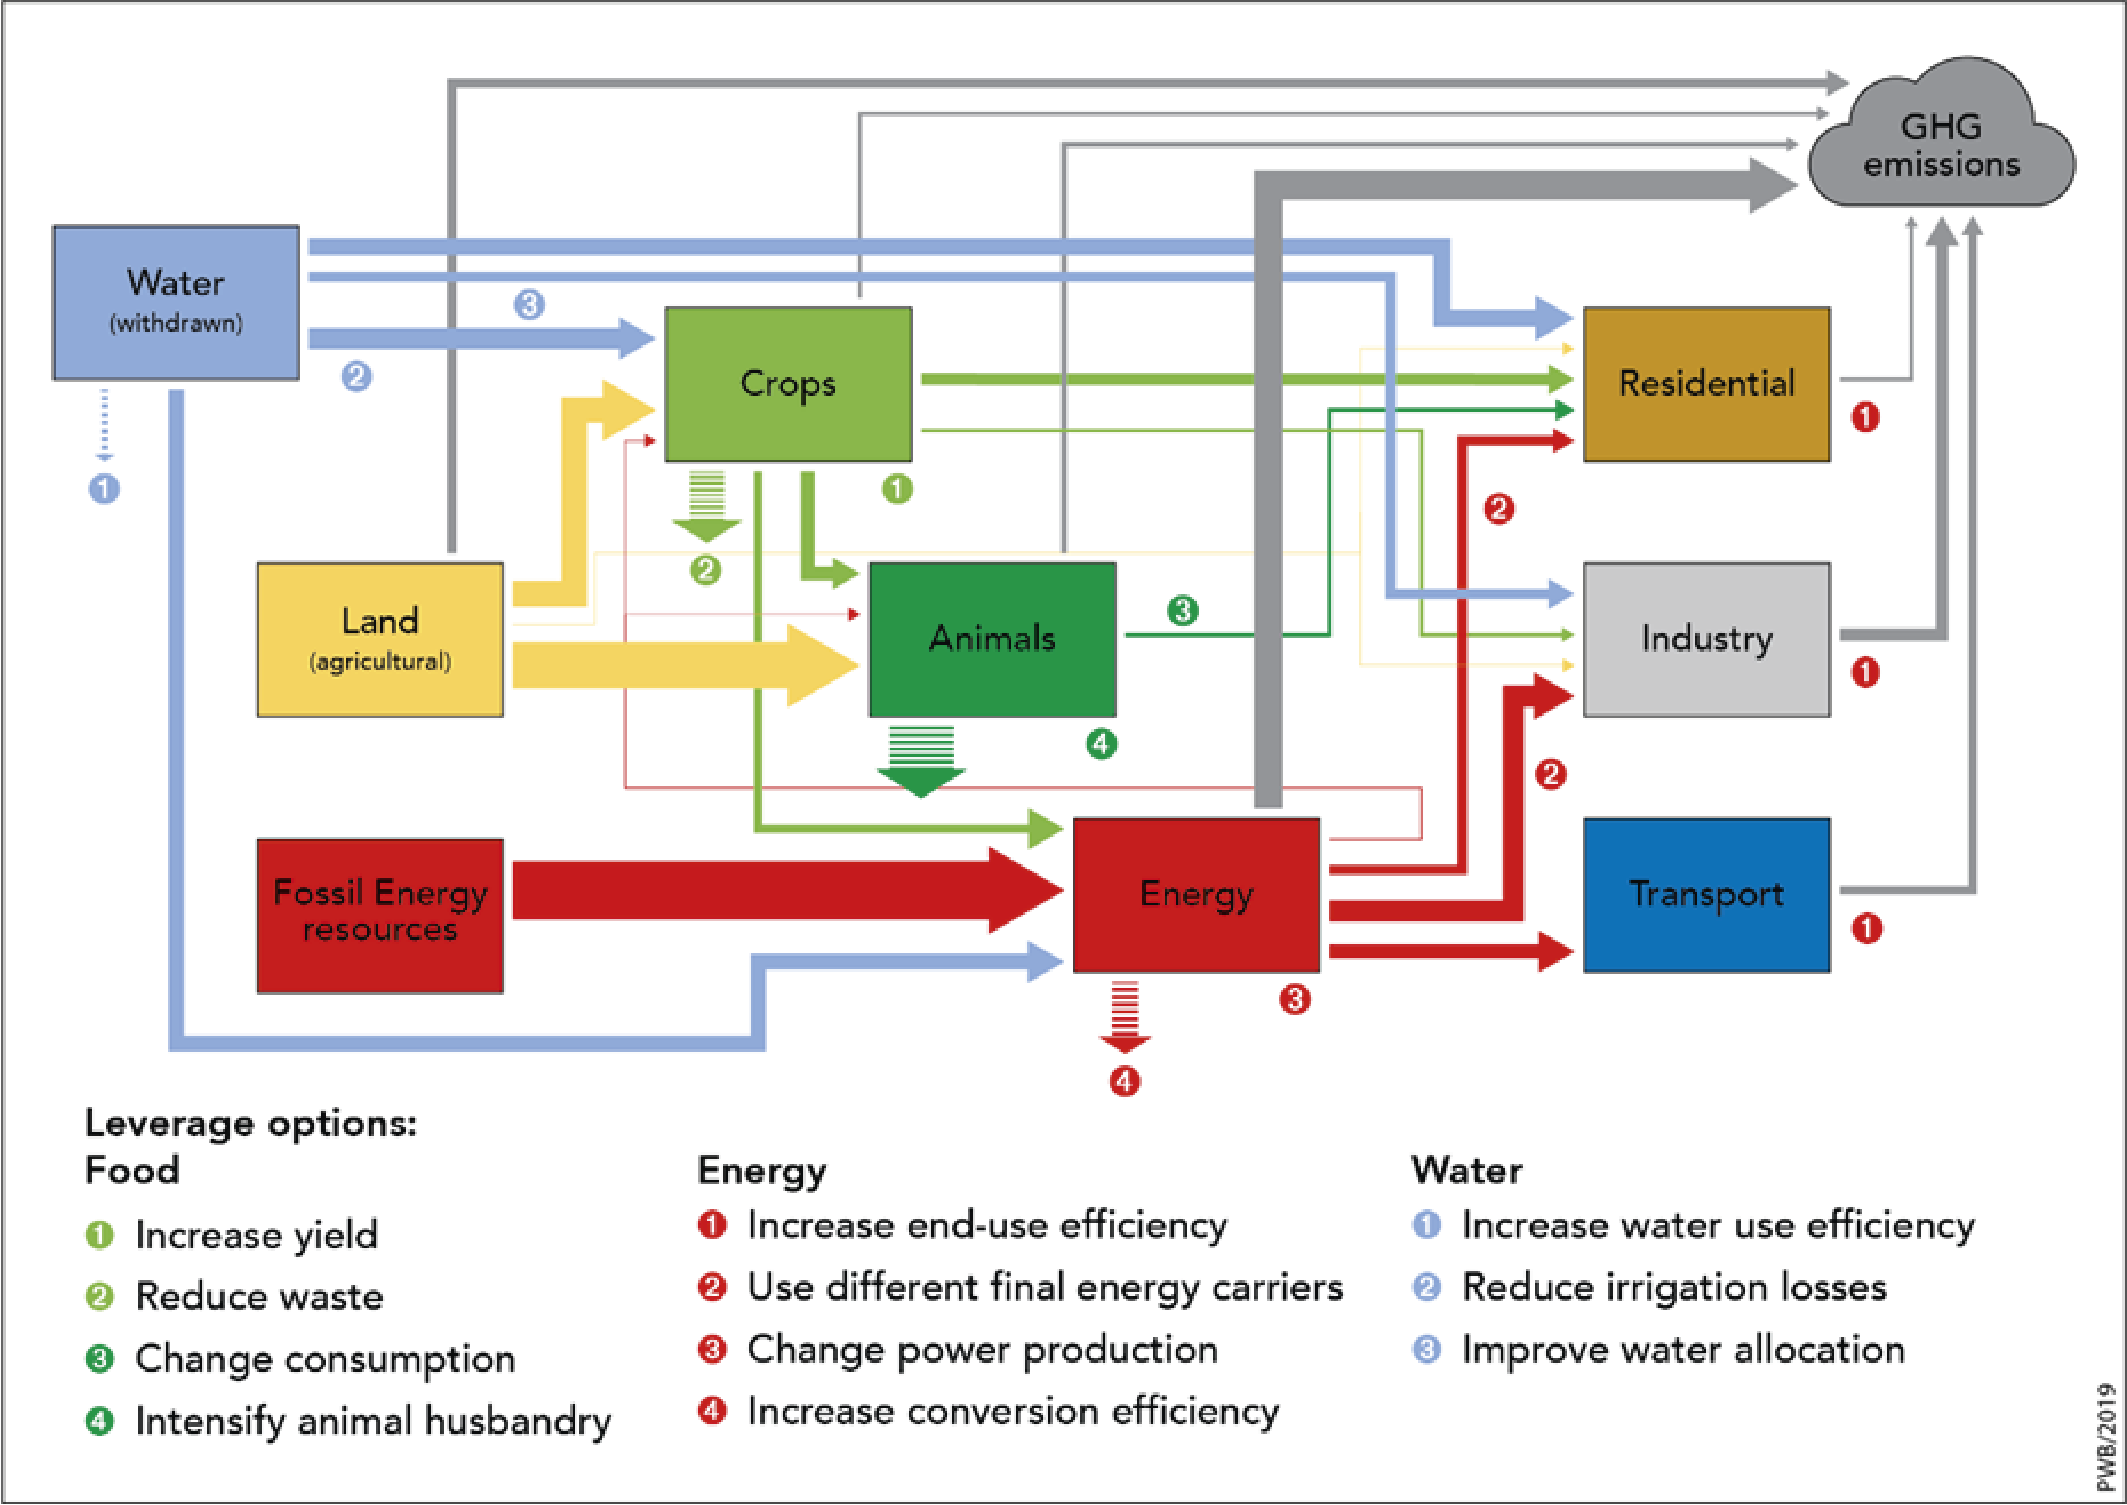 Linkages between the different agriculture, energy and water systems.